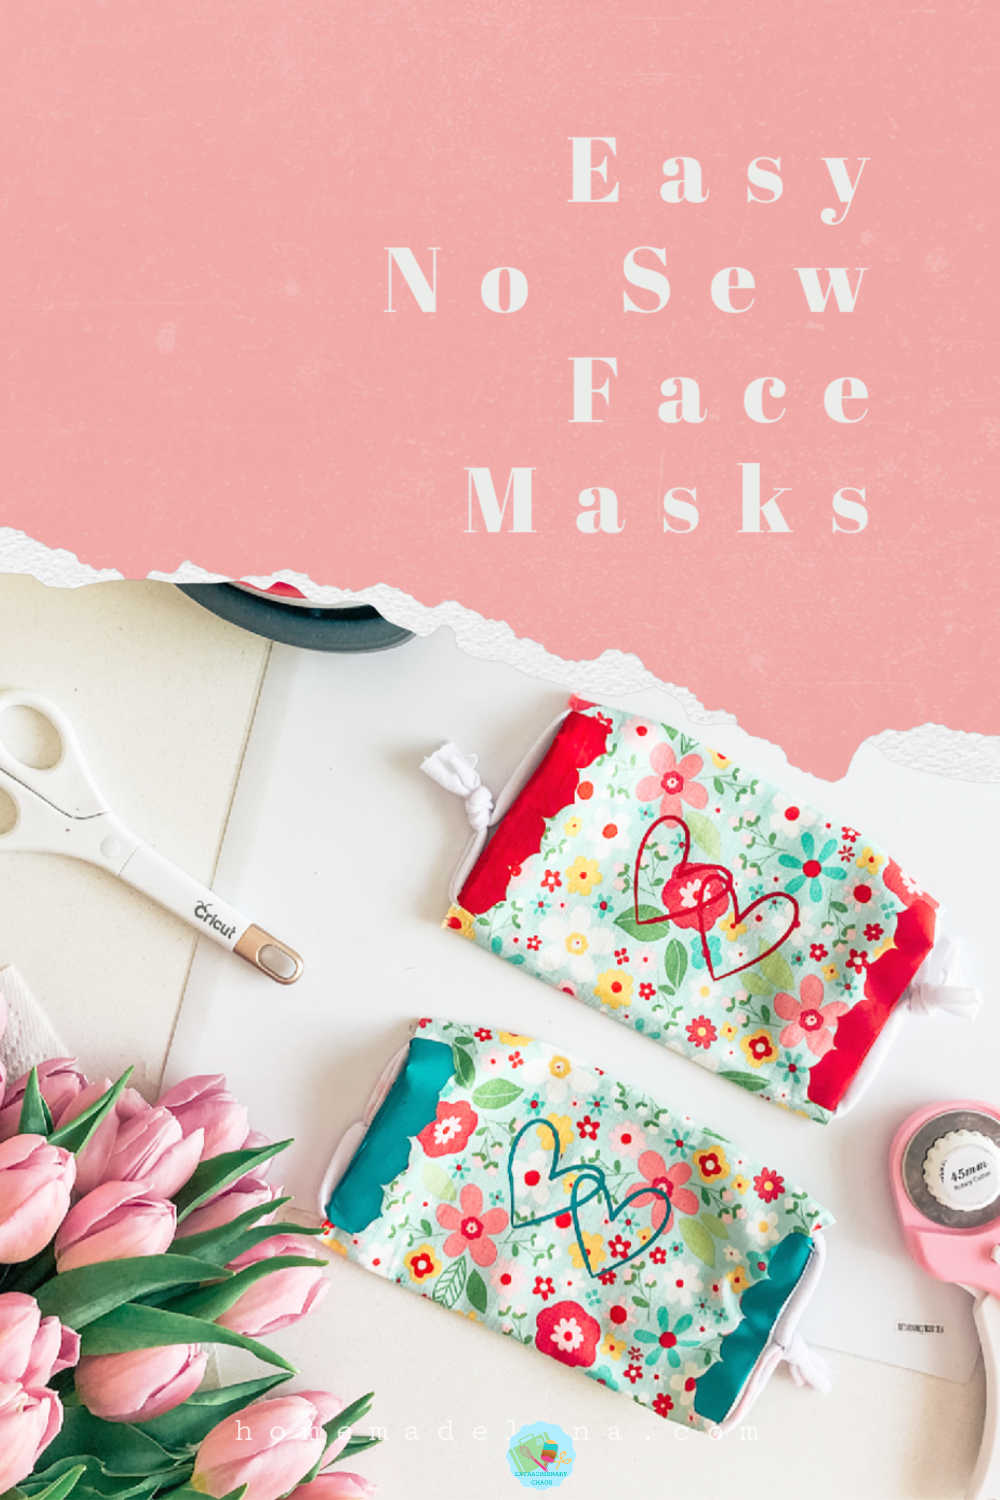 Easy children's face books, no need to sew just use Cricut Iron On Vinyl to seal the edges and jersey ear wraps for comfort #kidsmasks #facemasksforchildren #prettyfacemasks